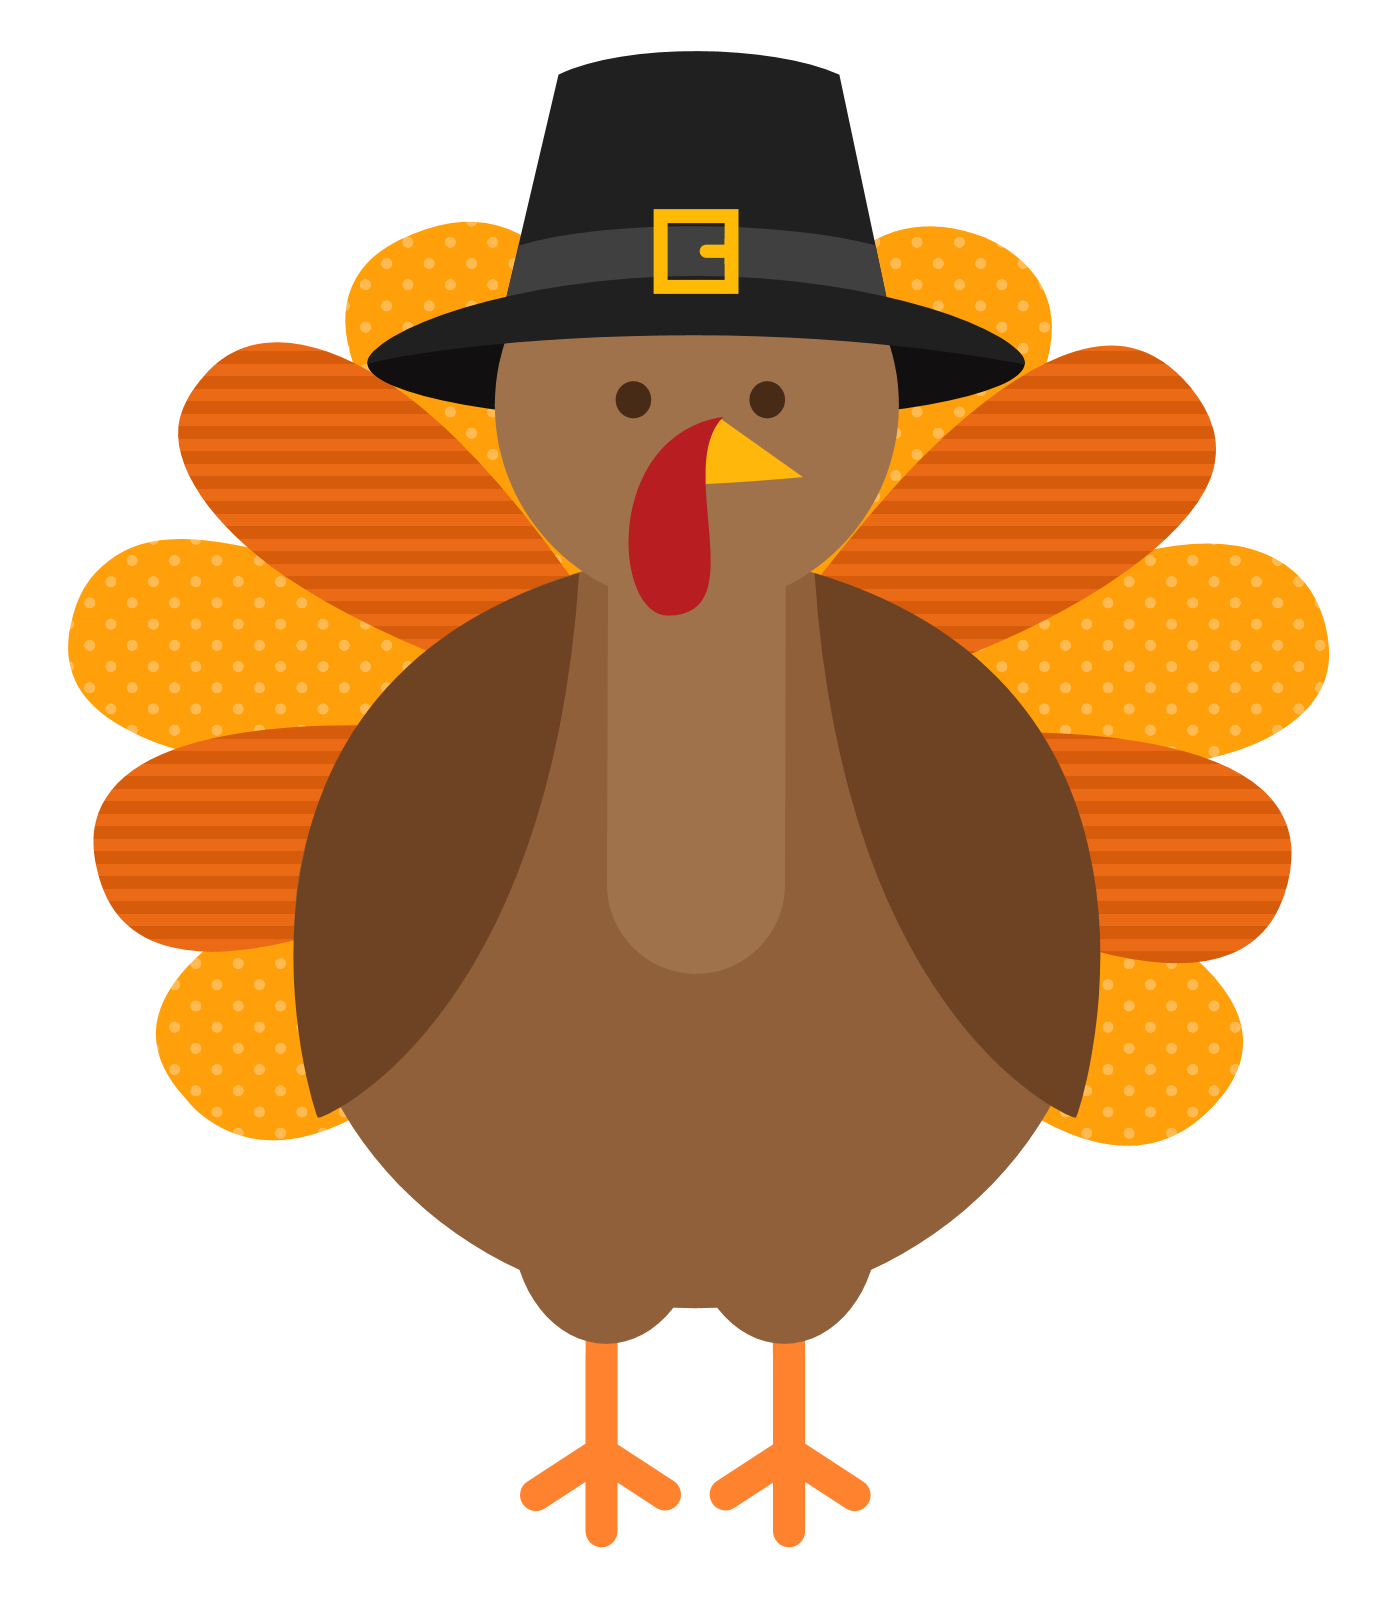 ThanksGiving clipart #2, Download drawings